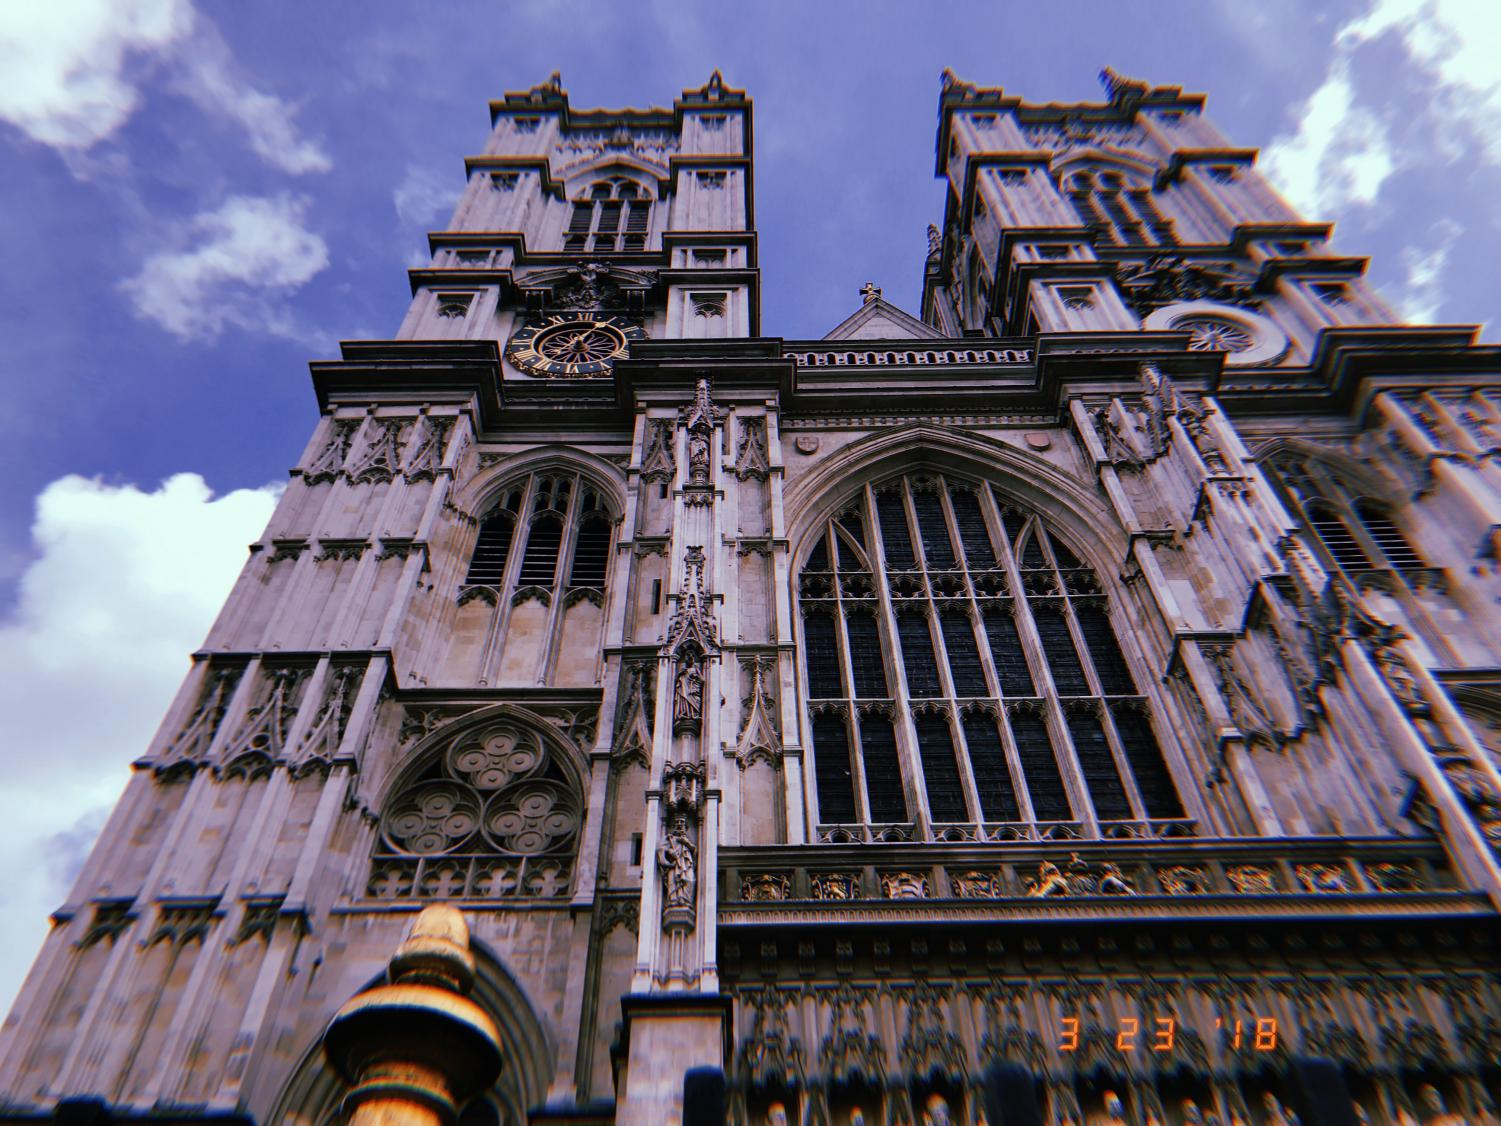 Westminster+Abbey+is+the+oldest+cathedral+in+London%2C+and+is+full+of+the+tombs+and+memorials+of+past+kings%2C+queens%2C+and+some+of+the+greatest+minds+in+the+world.+Most+recently+added+will+be+Stephen+Hawking%2C+who+just+passed+away+in+March.+He+will+be+memorialized+among+the+minds+of+Sir+Isaac+Newton+and+Shakespeare.+